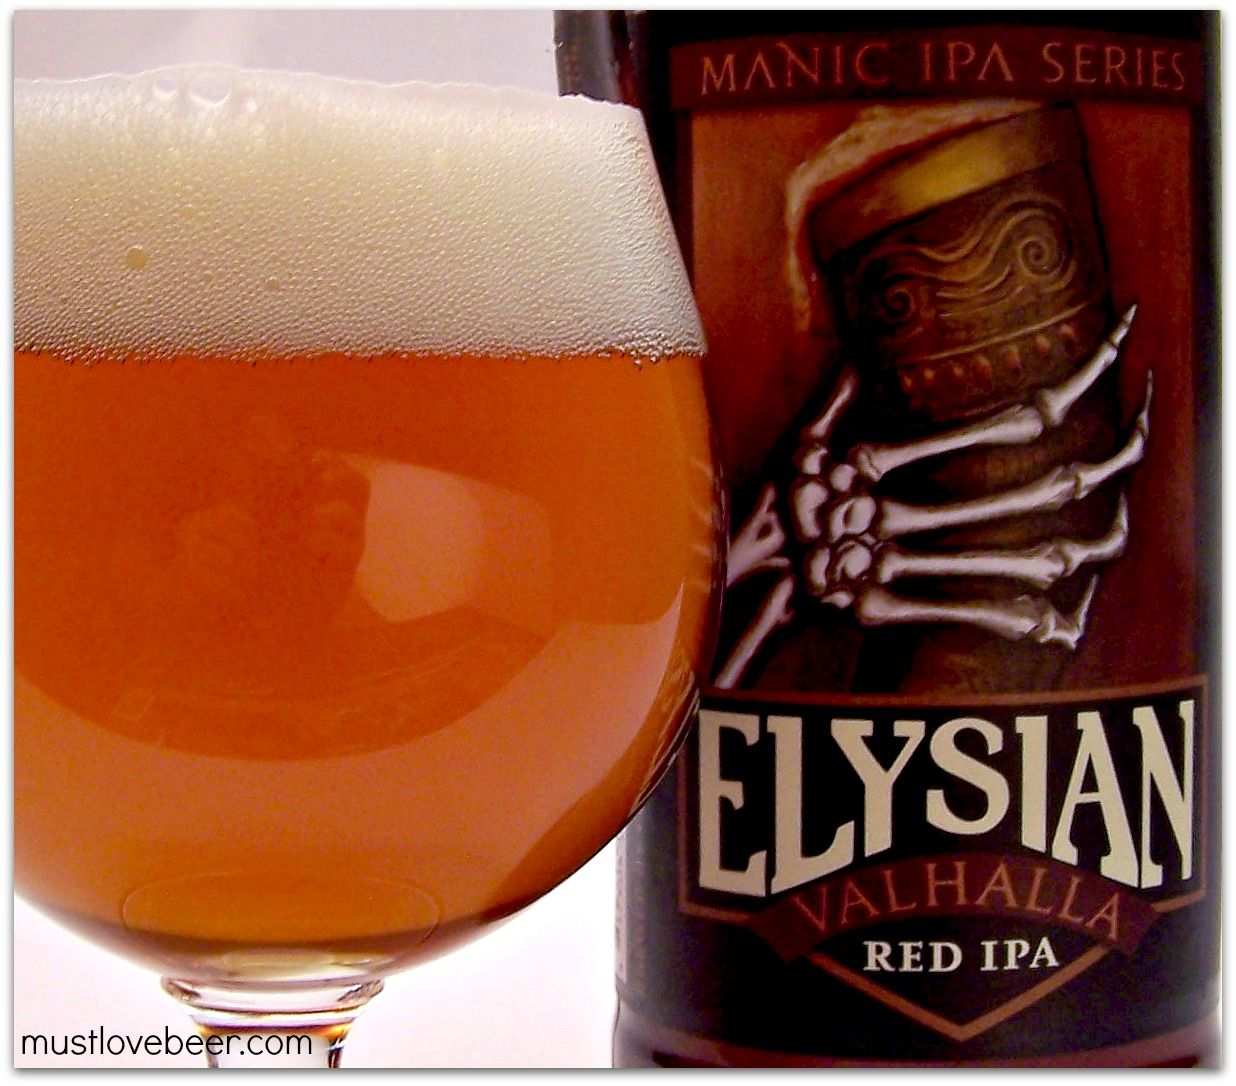 Elysian Brewing Co Manic Ipa Series Valhalla Red Ipa Wa Craftbeer Elysian Brewing Wine And Spirits Craft Beer